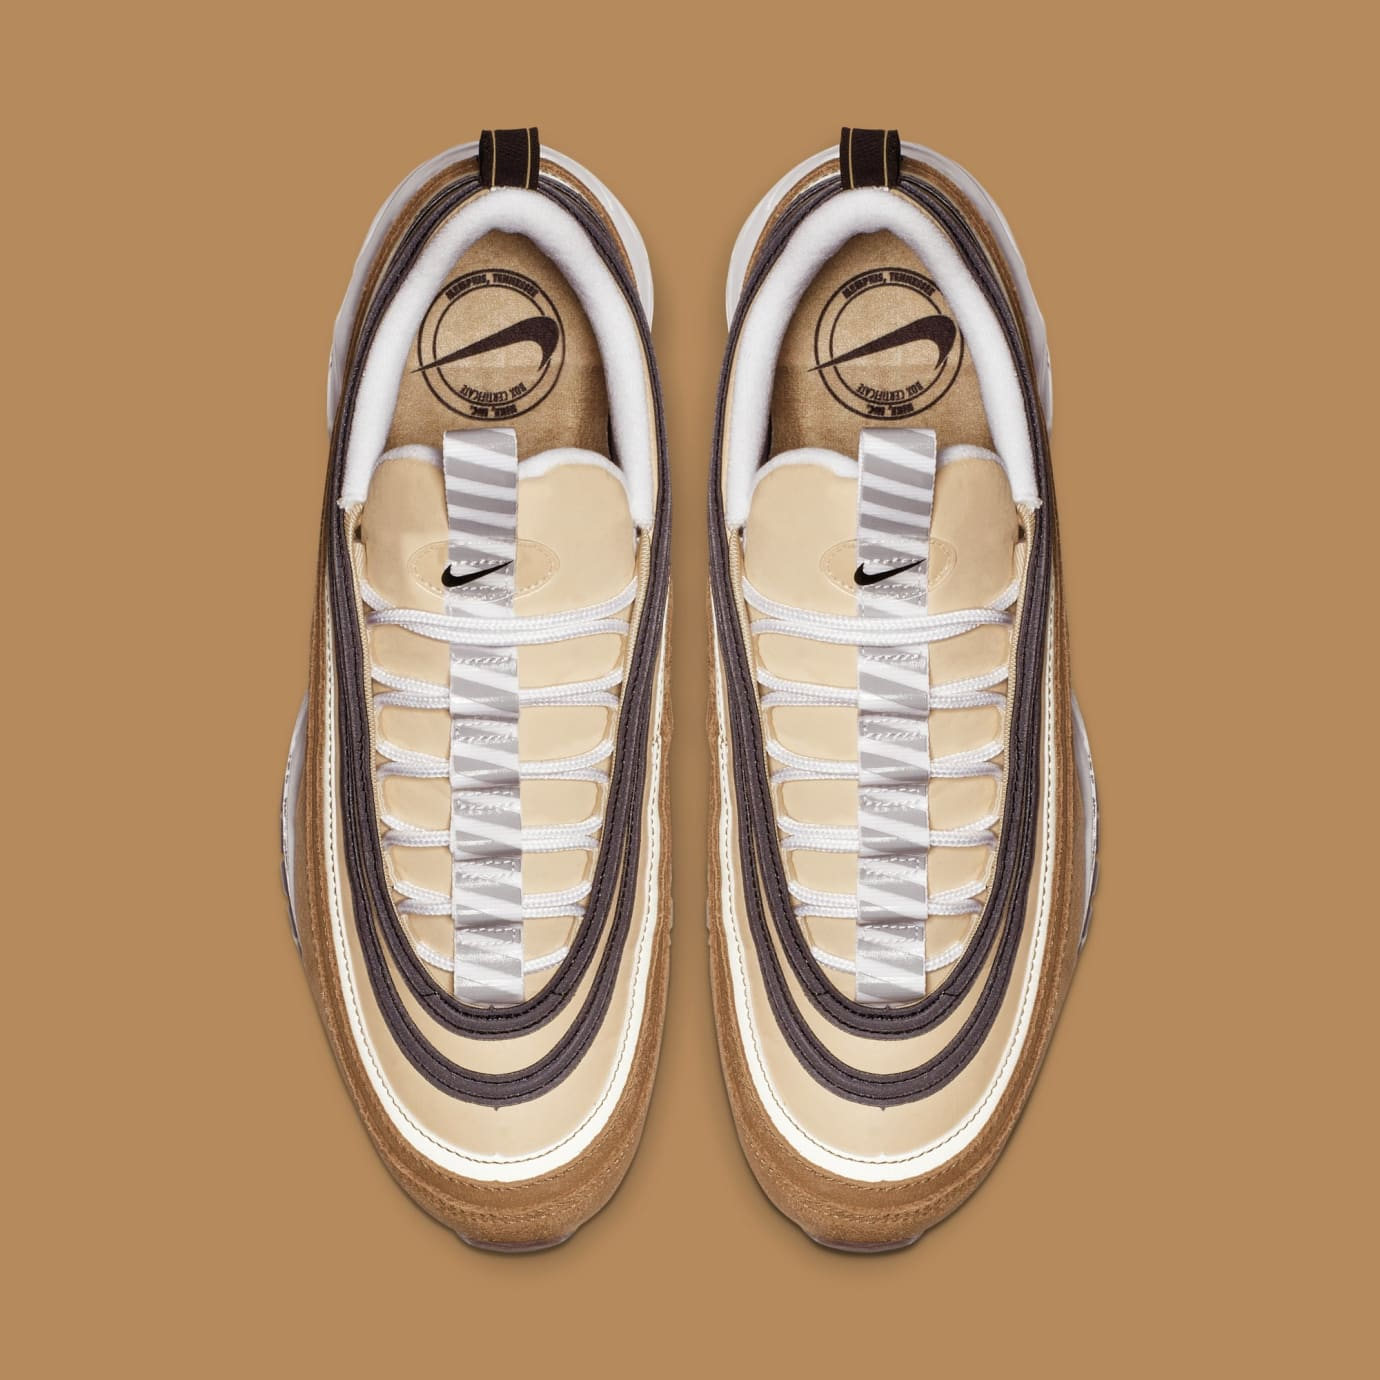 Image via Nike Nike Air Max 97  Ale Brown Black-Elemental Gold  921826-201 11c314c7e